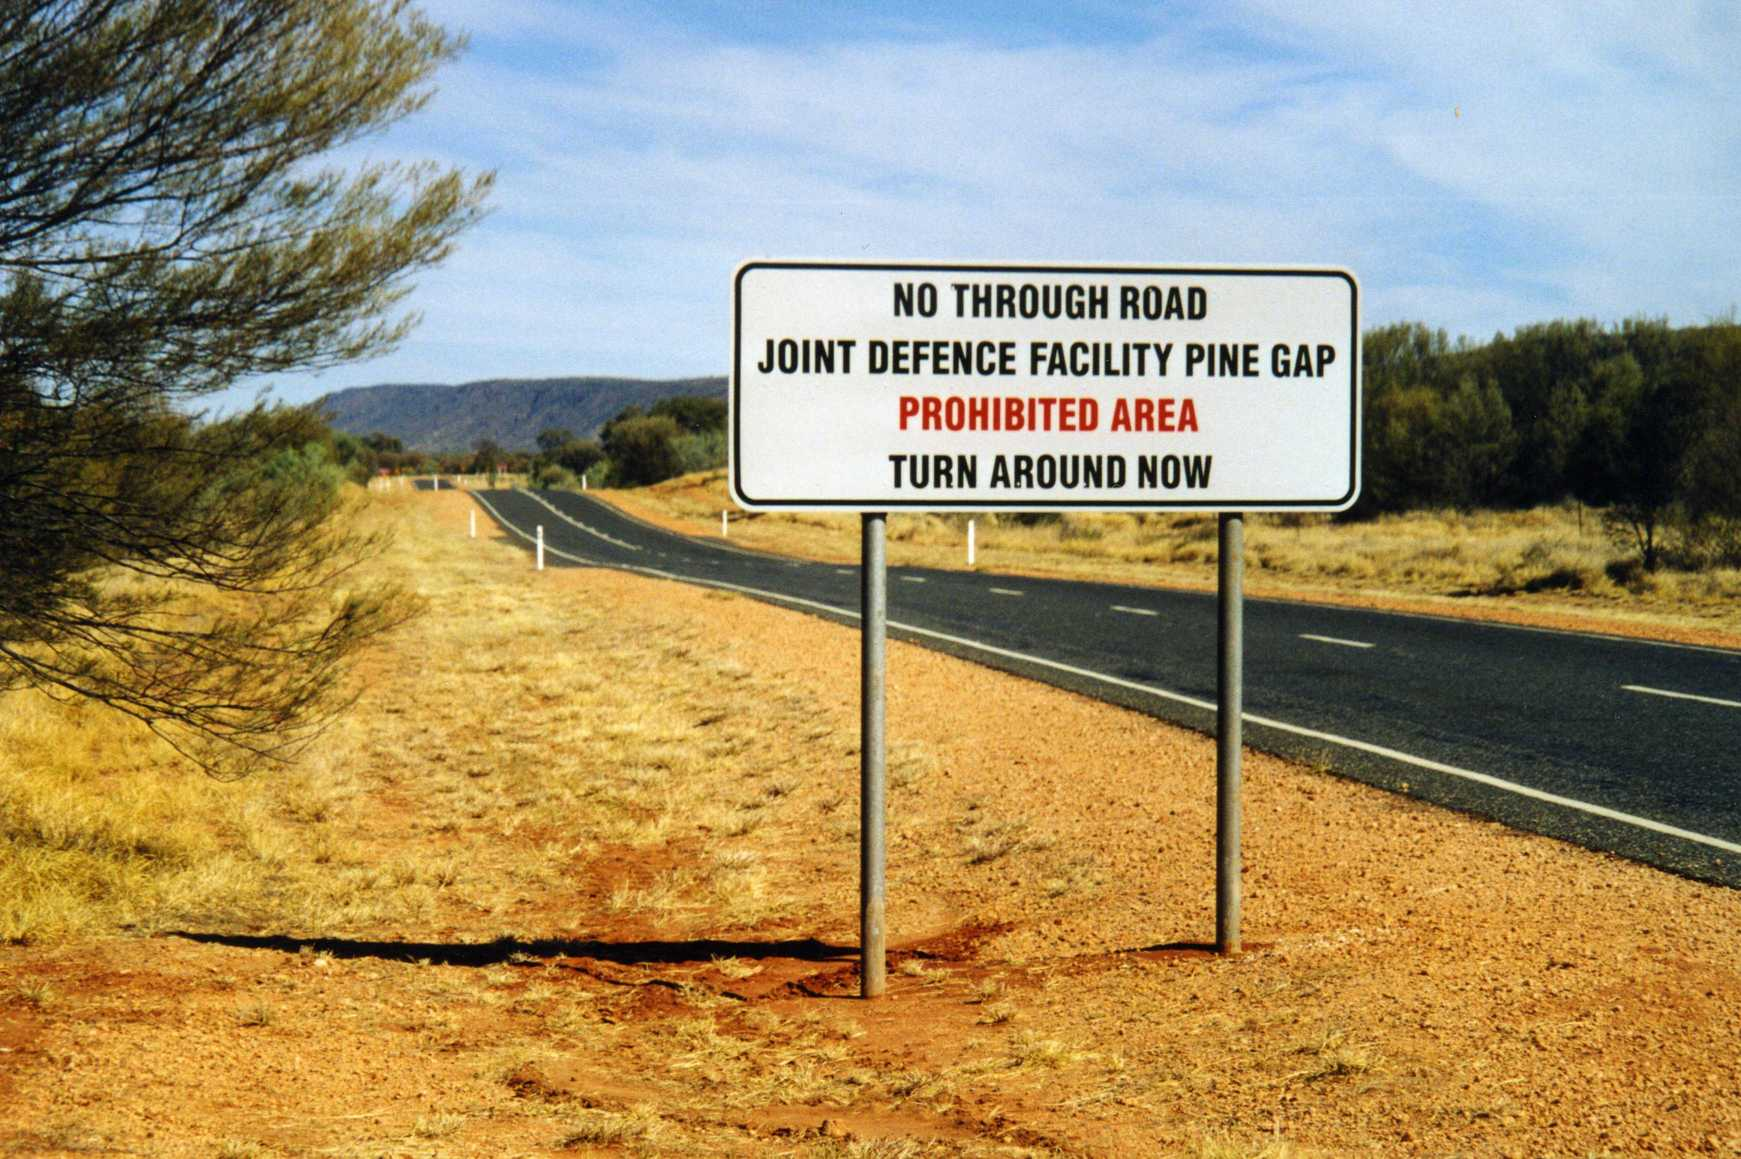 Over 1000 CIA agents have turned up at Pine Gap